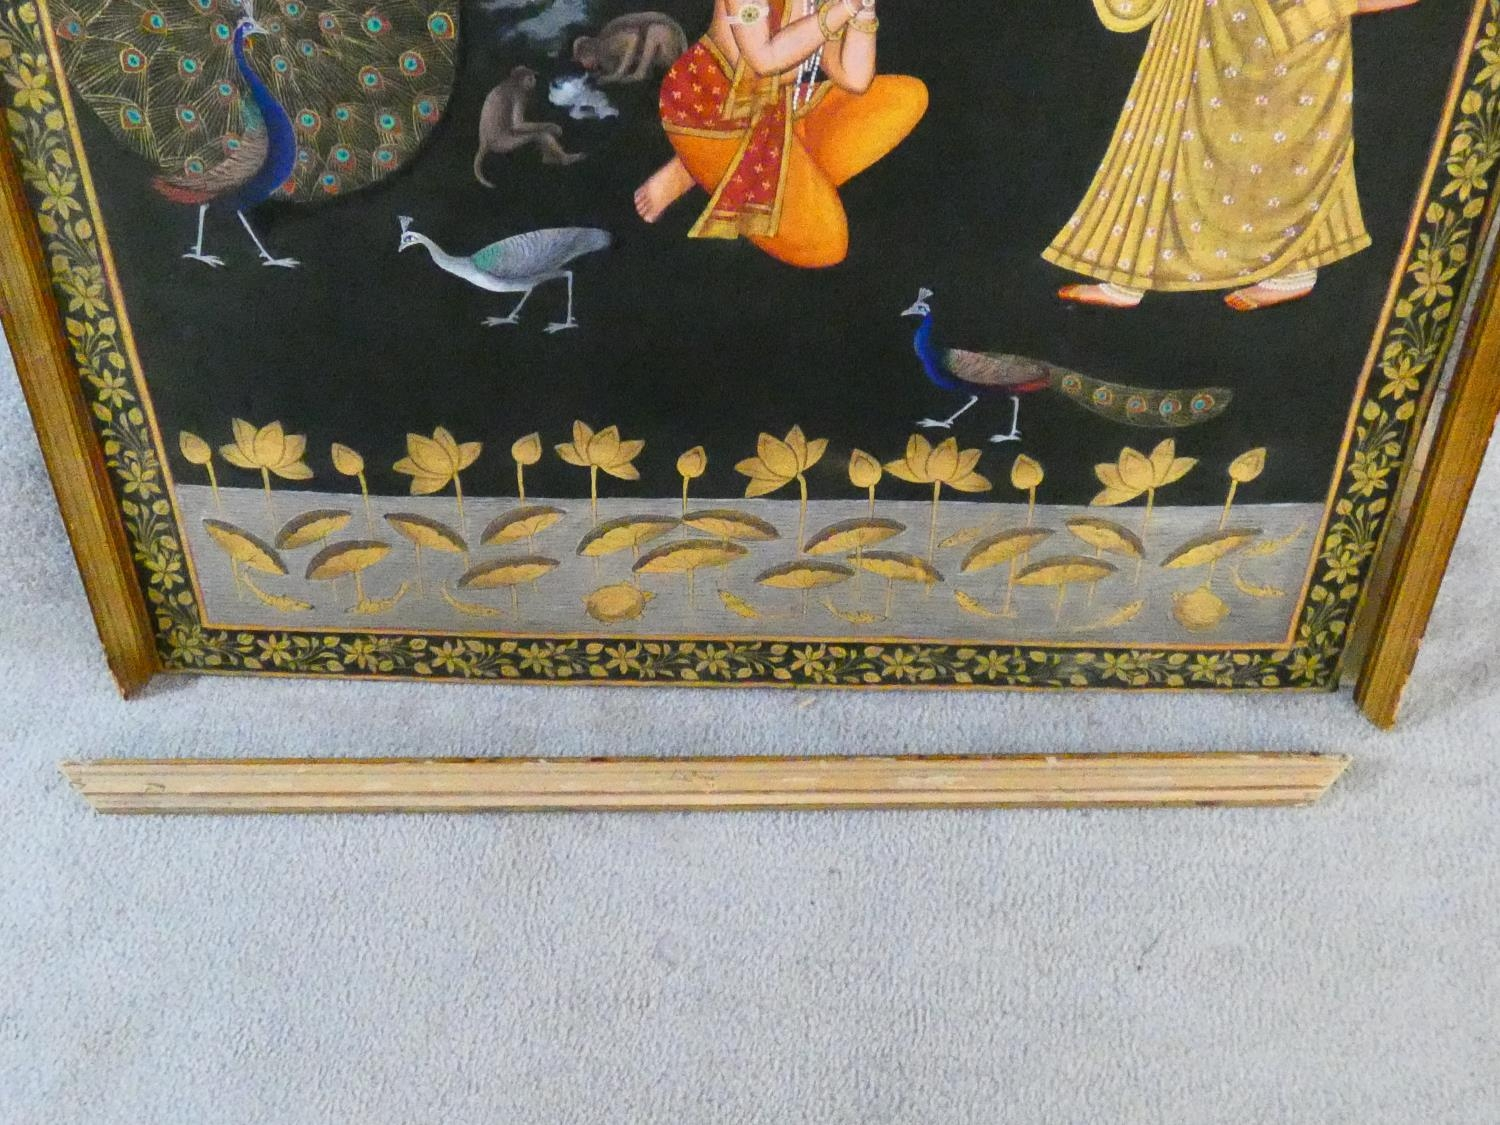 A large framed Indo-Persian gilded silk painting of Krishna with females surrounding him, standing - Image 8 of 8